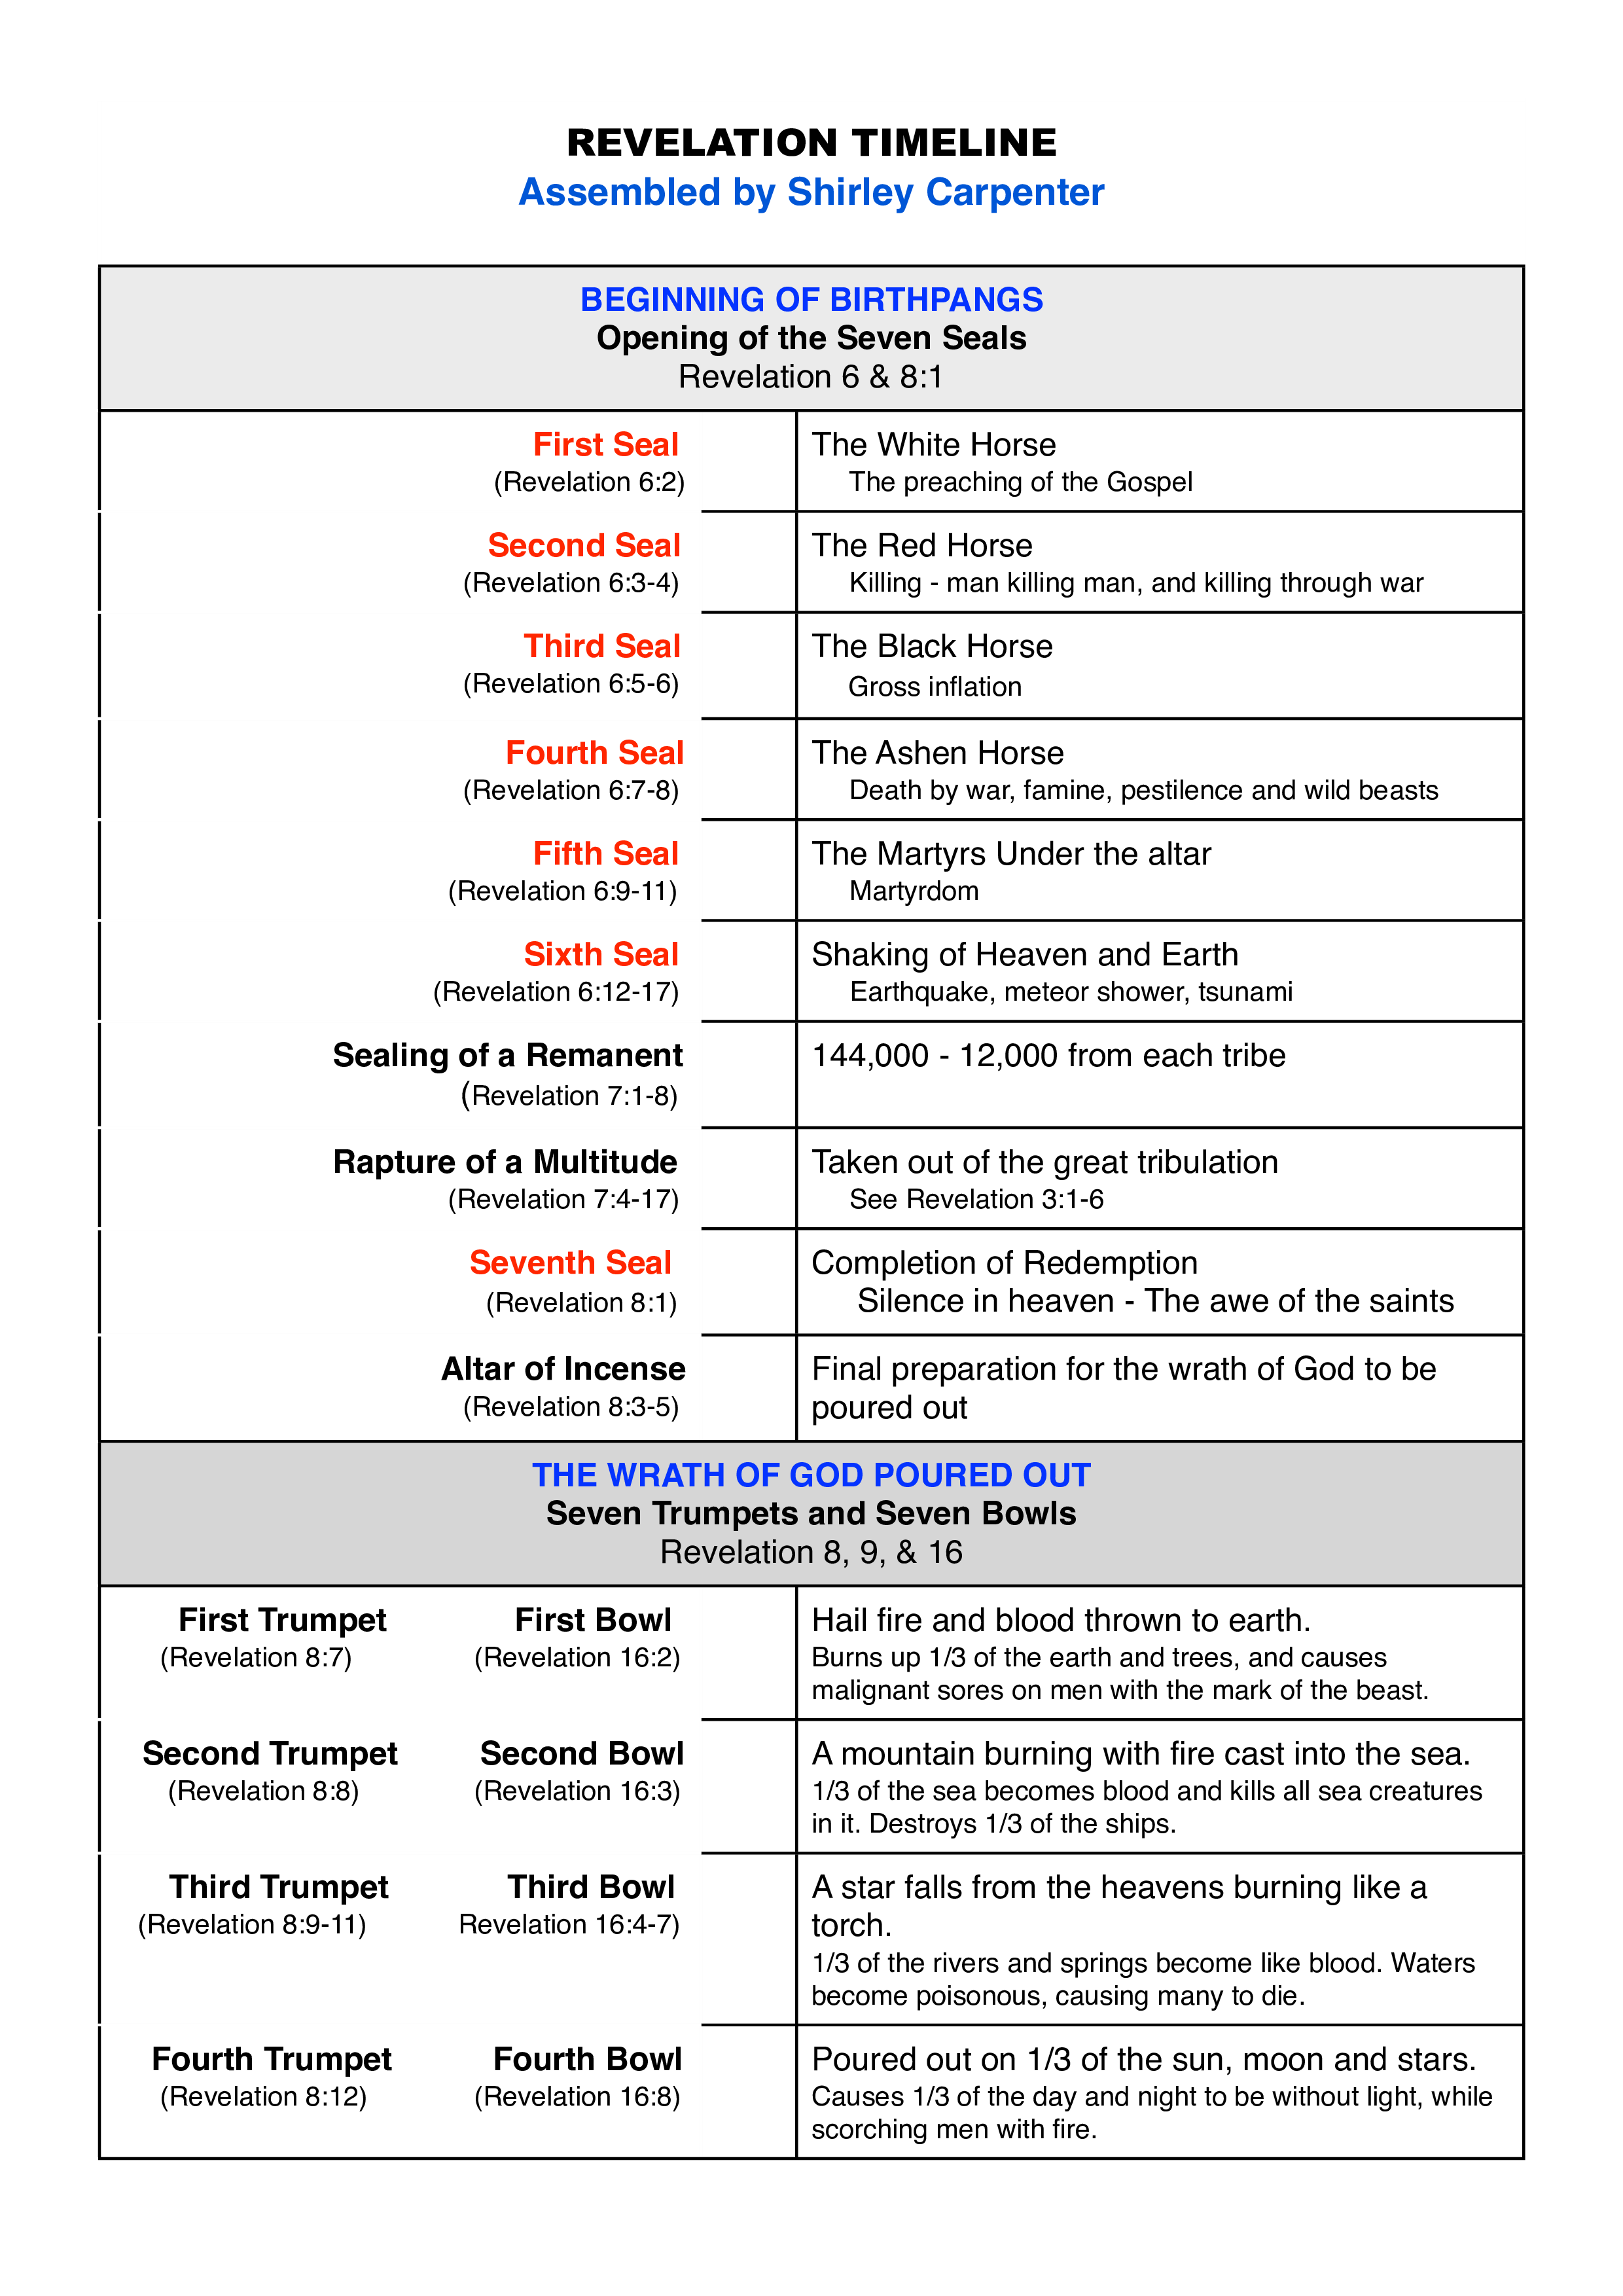 Revelation Timeline Chart - How to create a Revelation Timeline